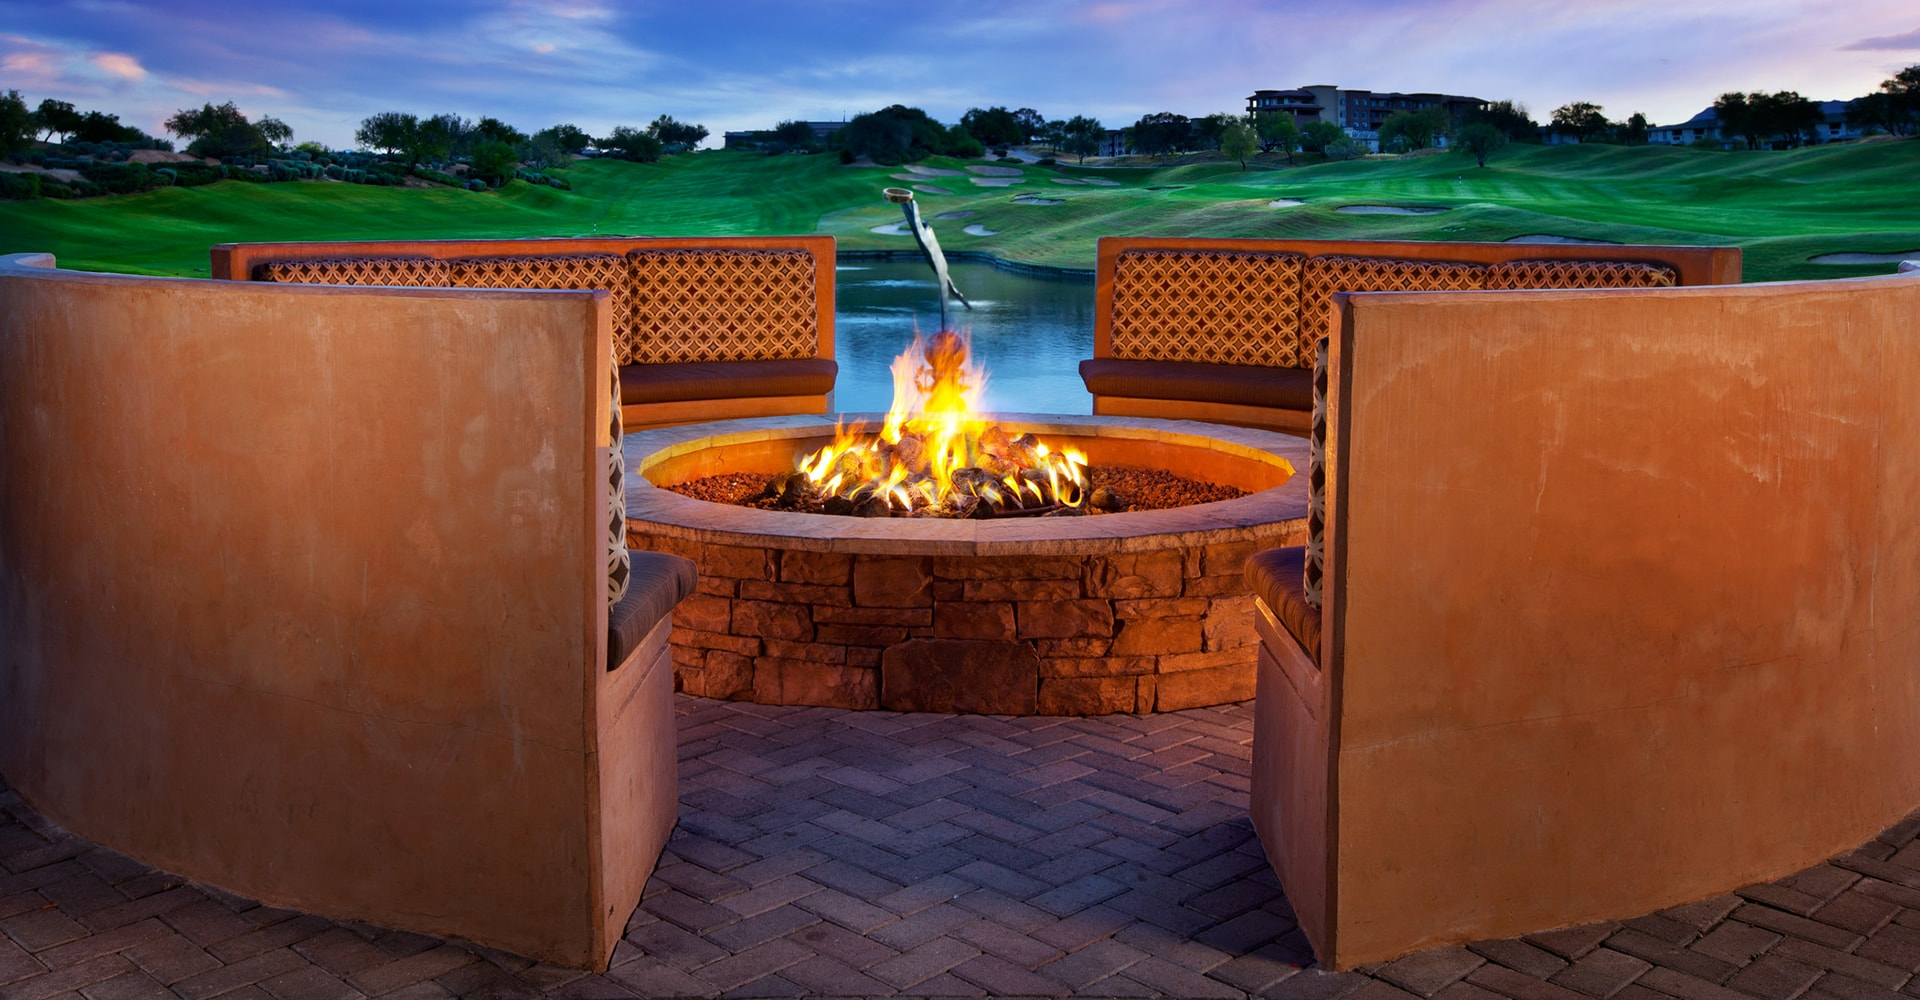 Kierland Westin Resort Fire PIt In Scottsdale Arizona